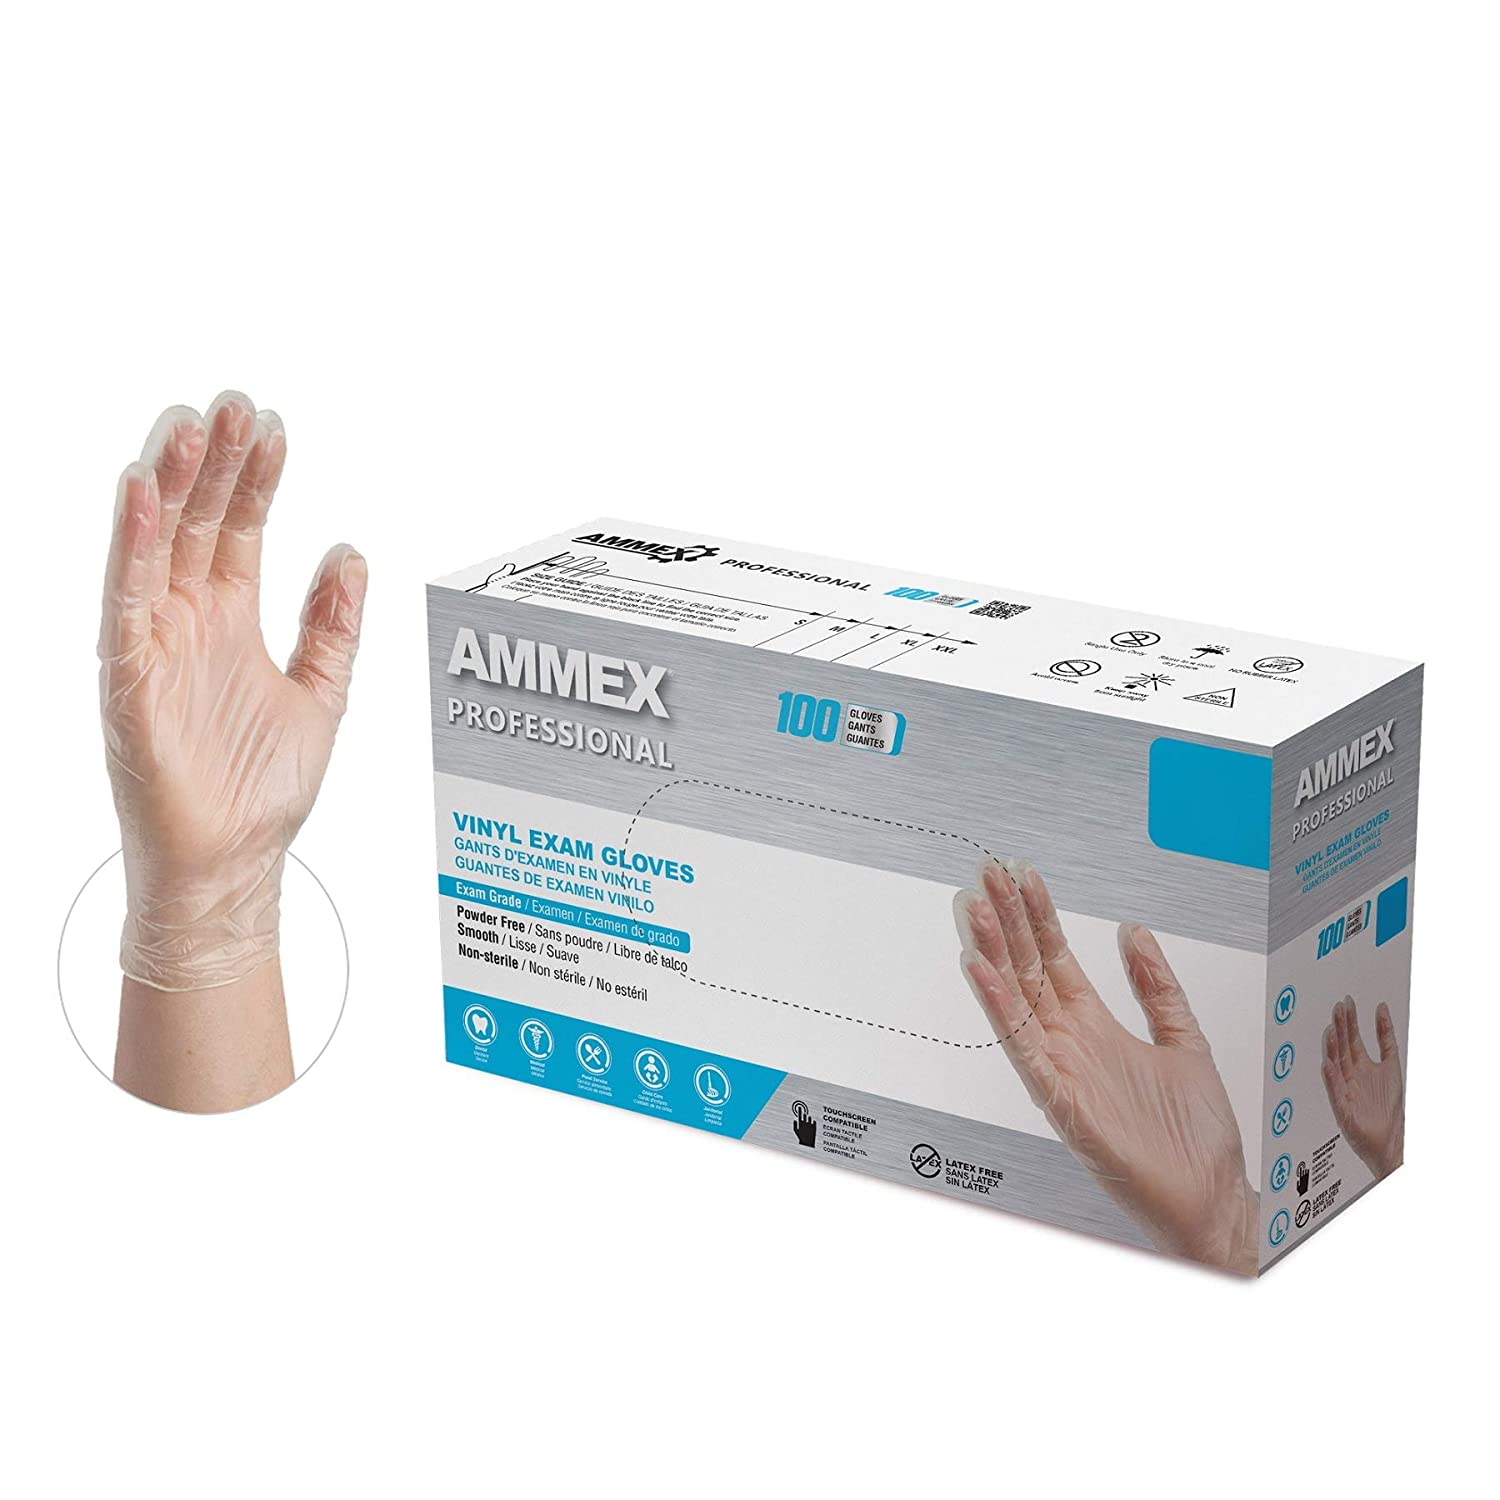 AMMEX Clear Vinyl Medical Gloves, Box of 100, 3 Mil, Size Small, Latex Free, Powder Free, Disposable, Non-Sterile, Food Safe, VPF62100-BX : Health & Household